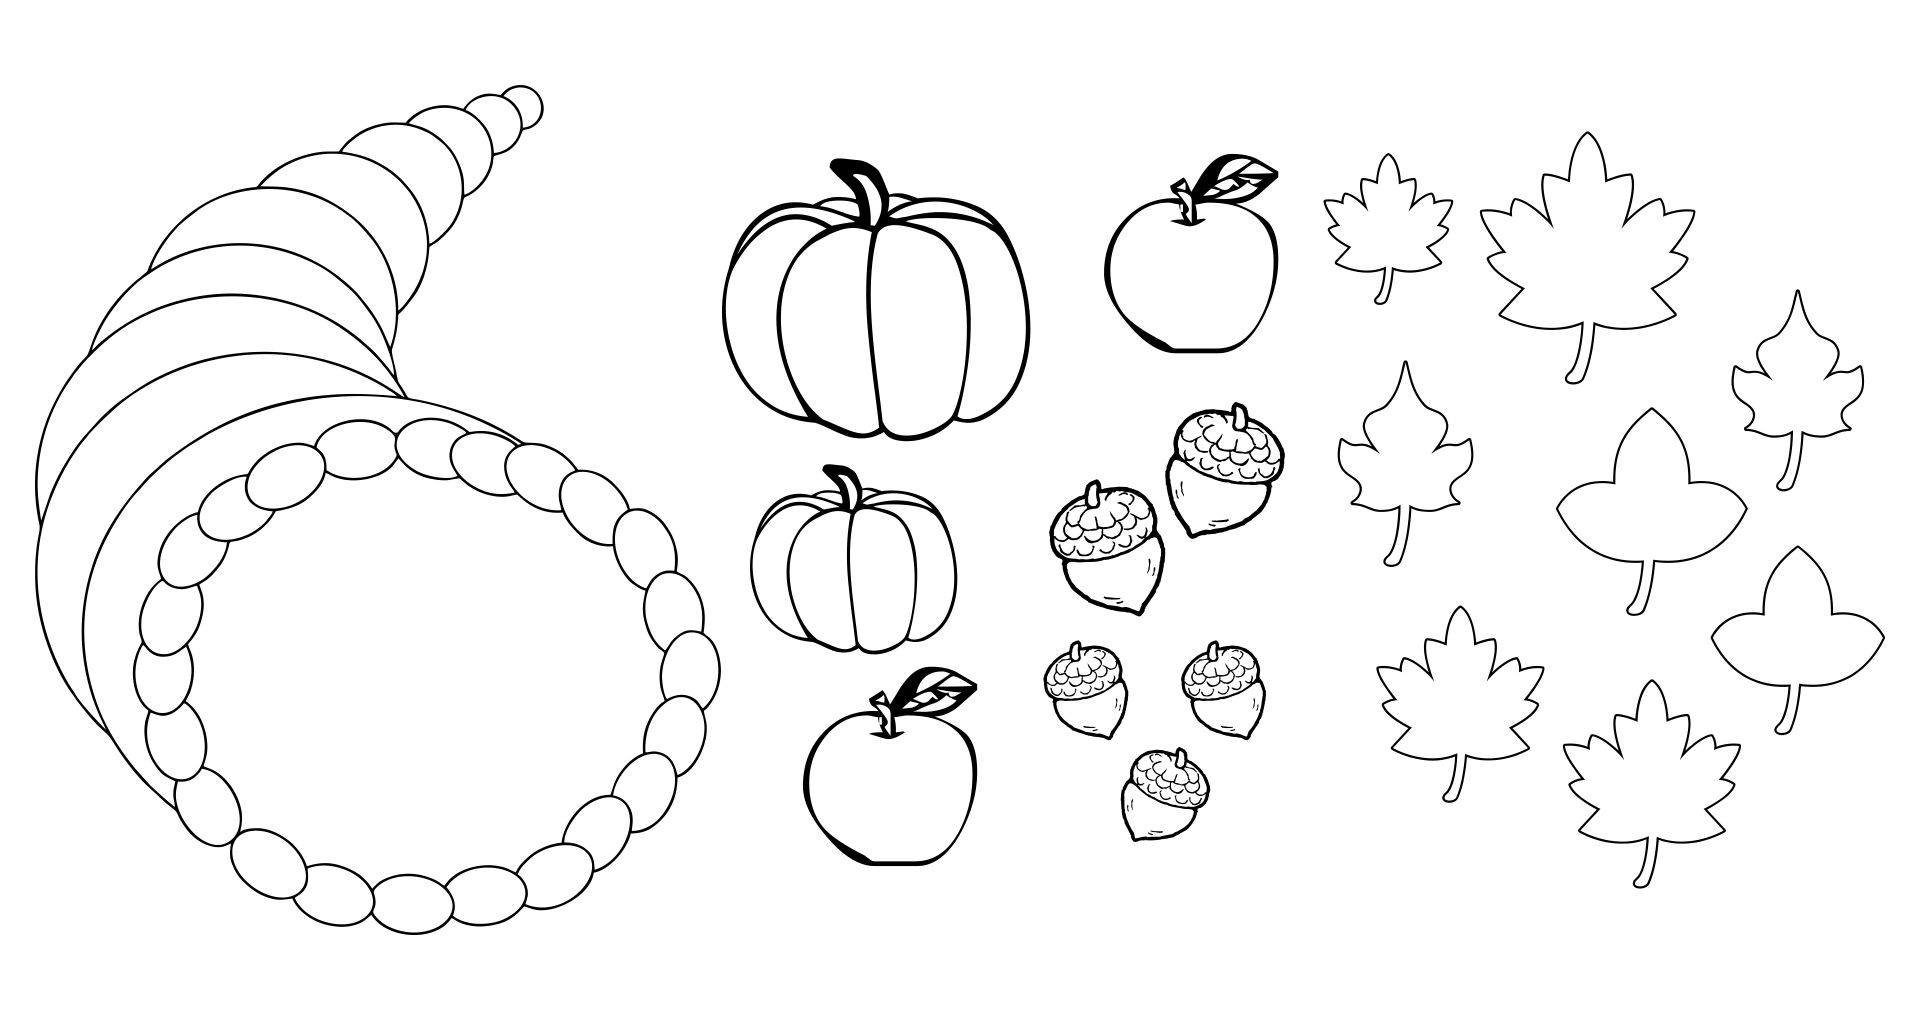 Printable Fruit And Vegetable Templates